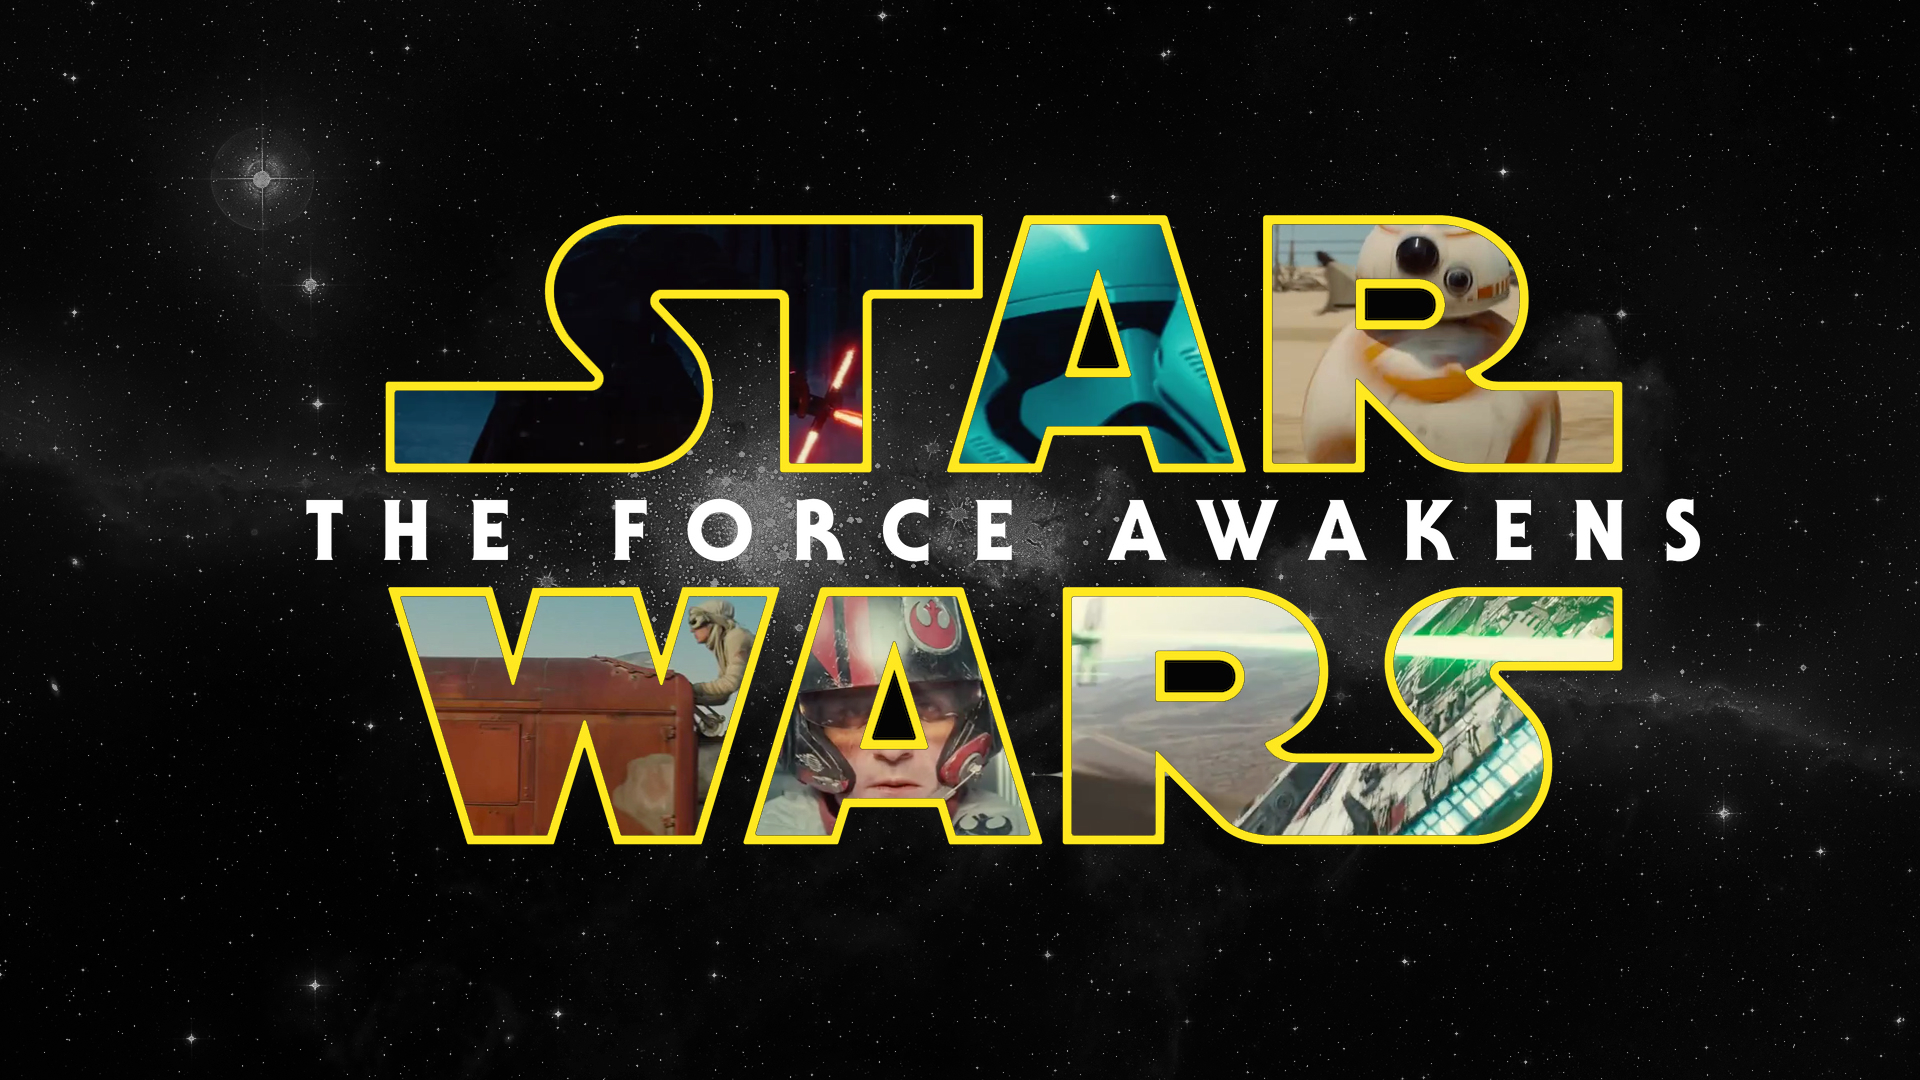 Star Wars the Force Awakens 2015 size 19201080 1920x1080